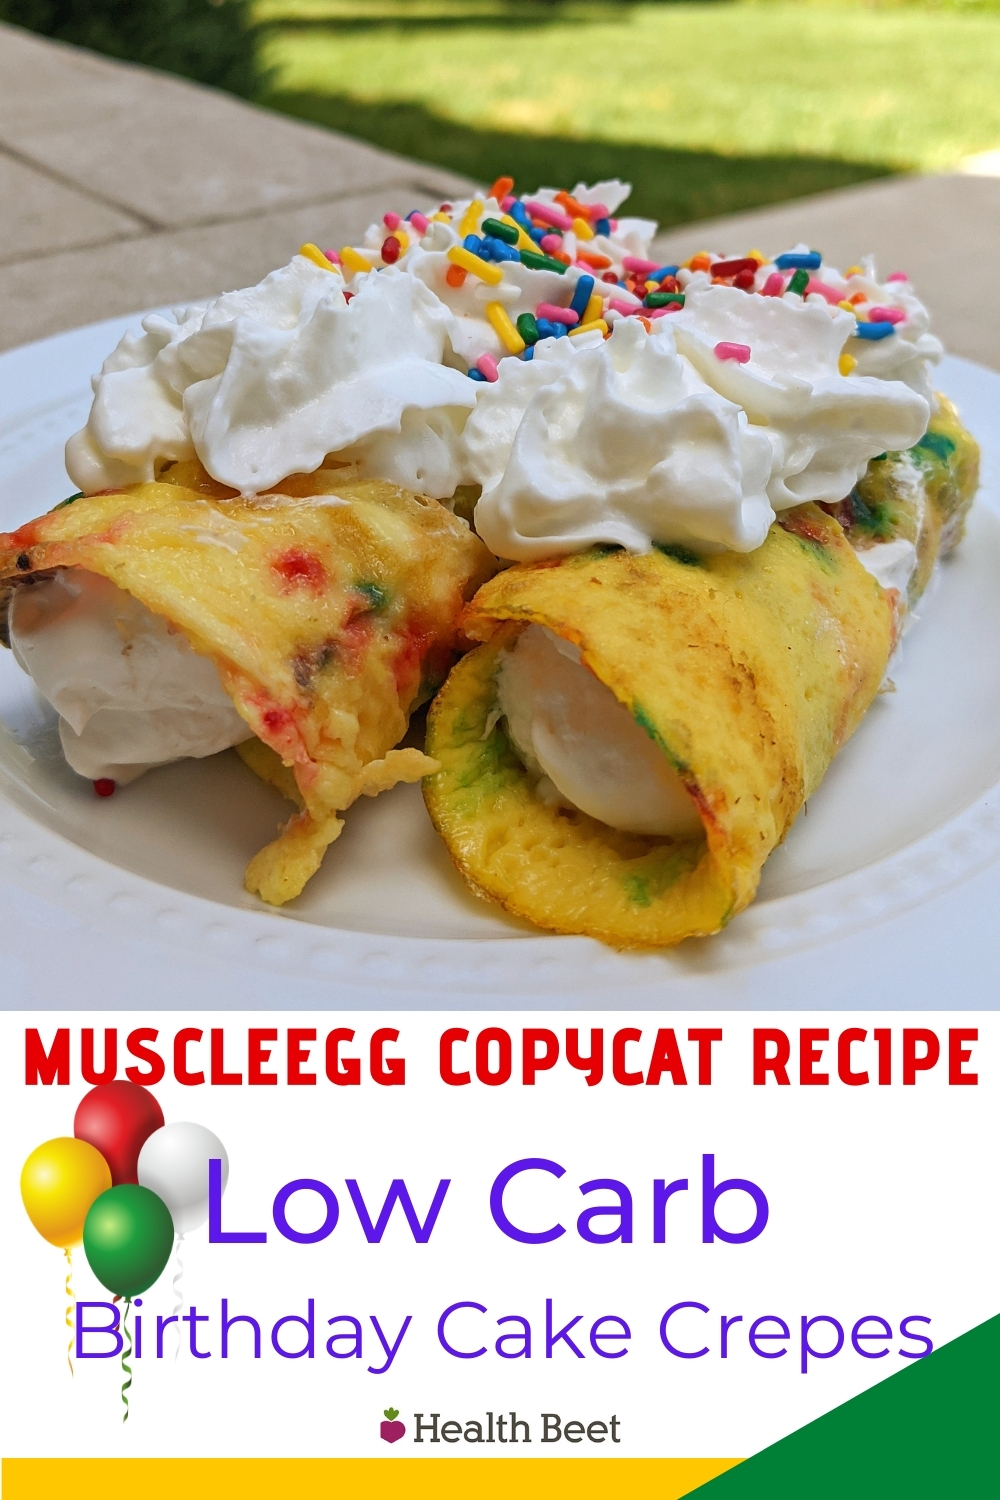 Low carb birthday cake crepes muscleegg copycat recipe